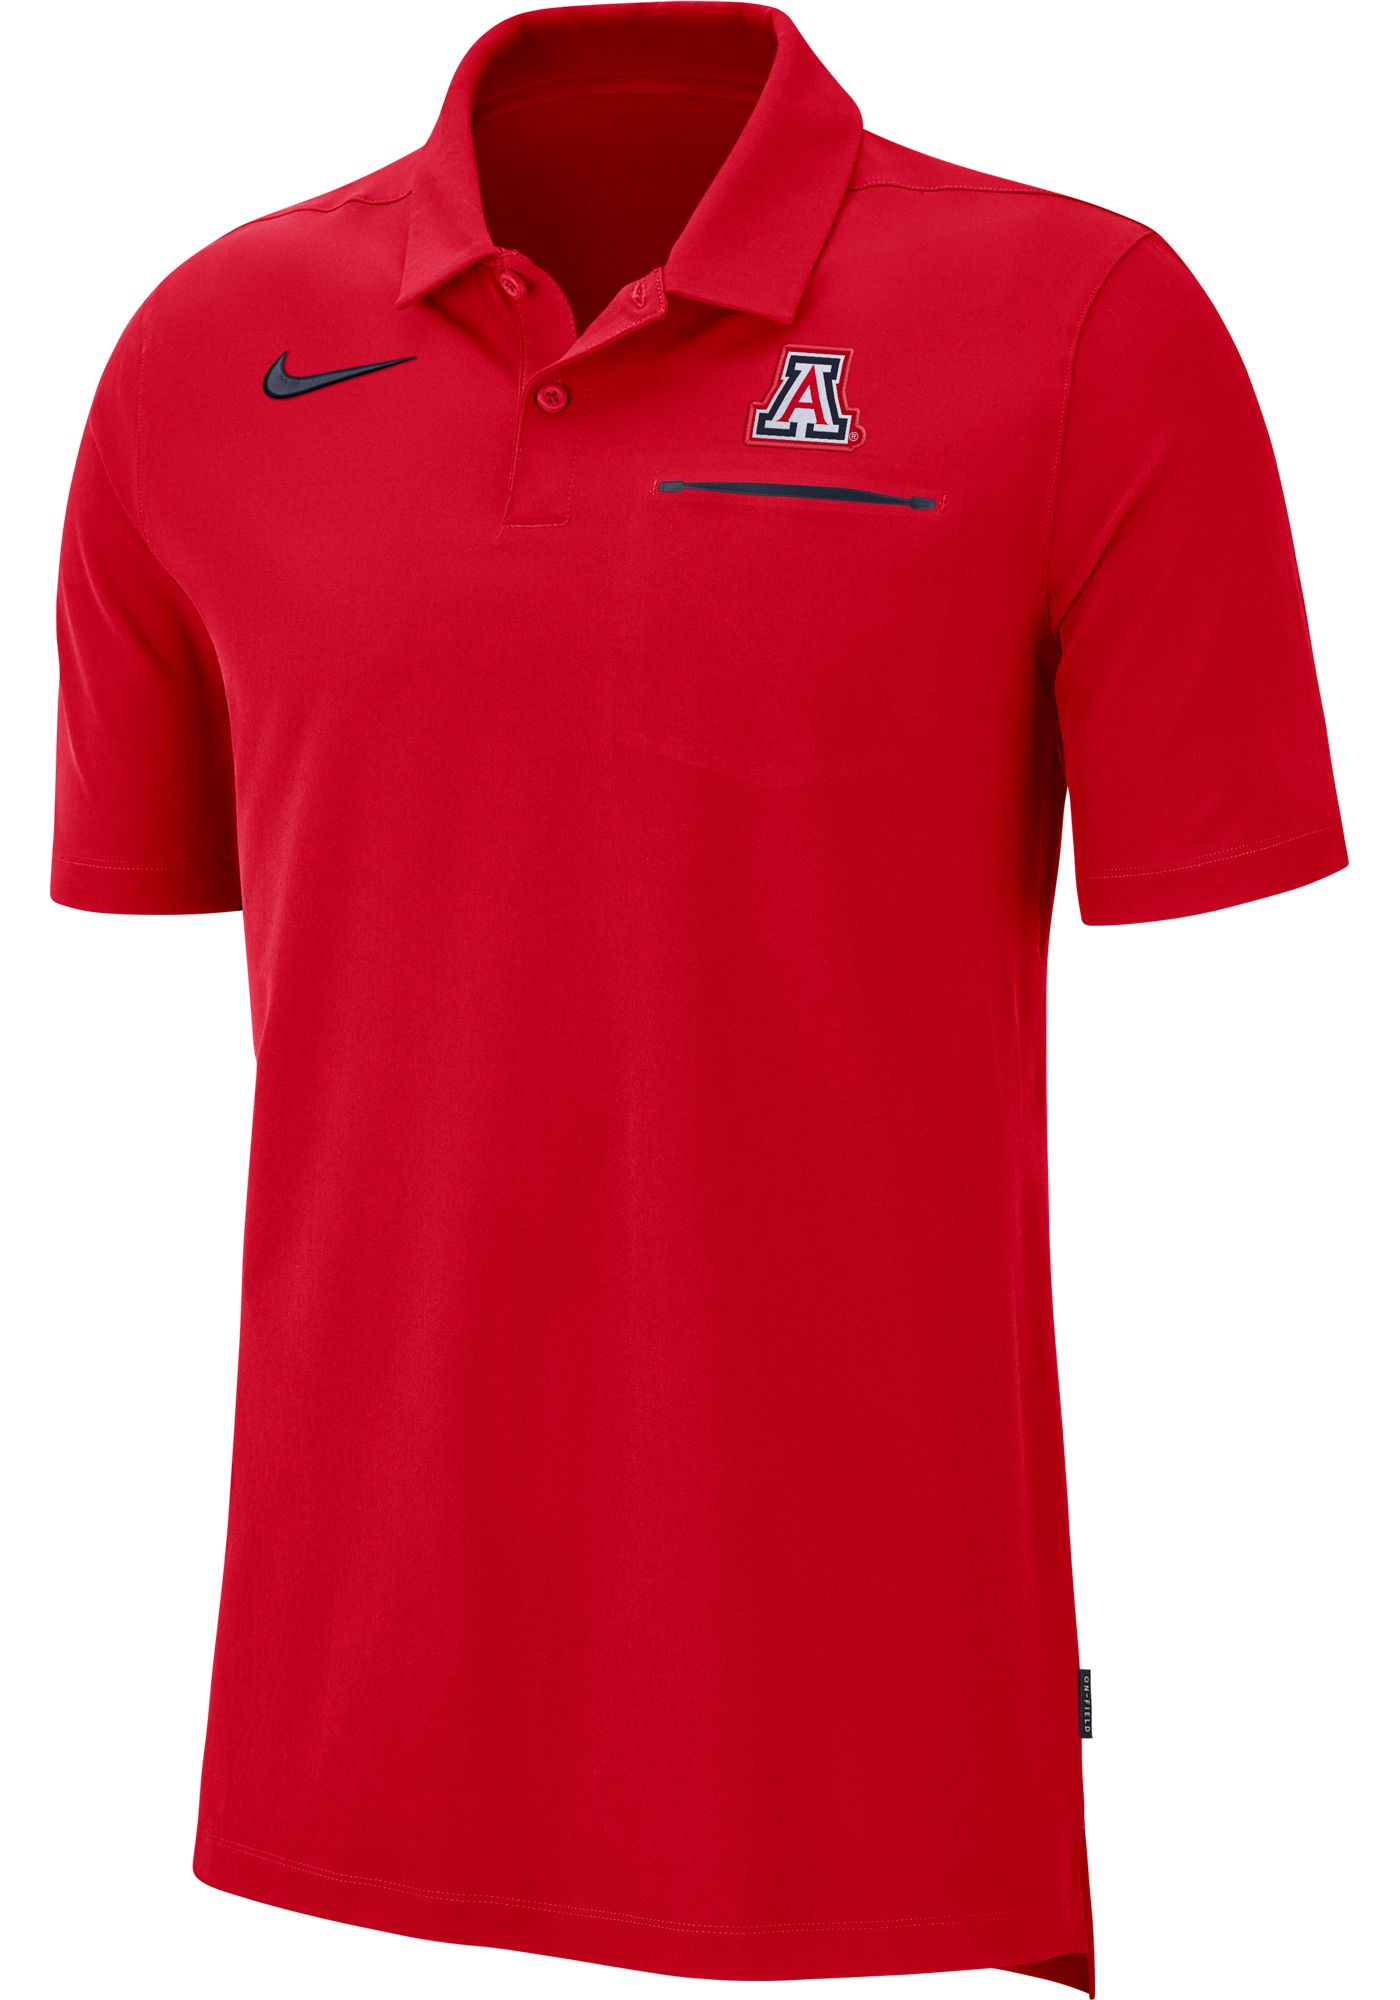 Nike Men's Arizona Wildcats Cardinal Dri-FIT Elite Football Sideline Polo